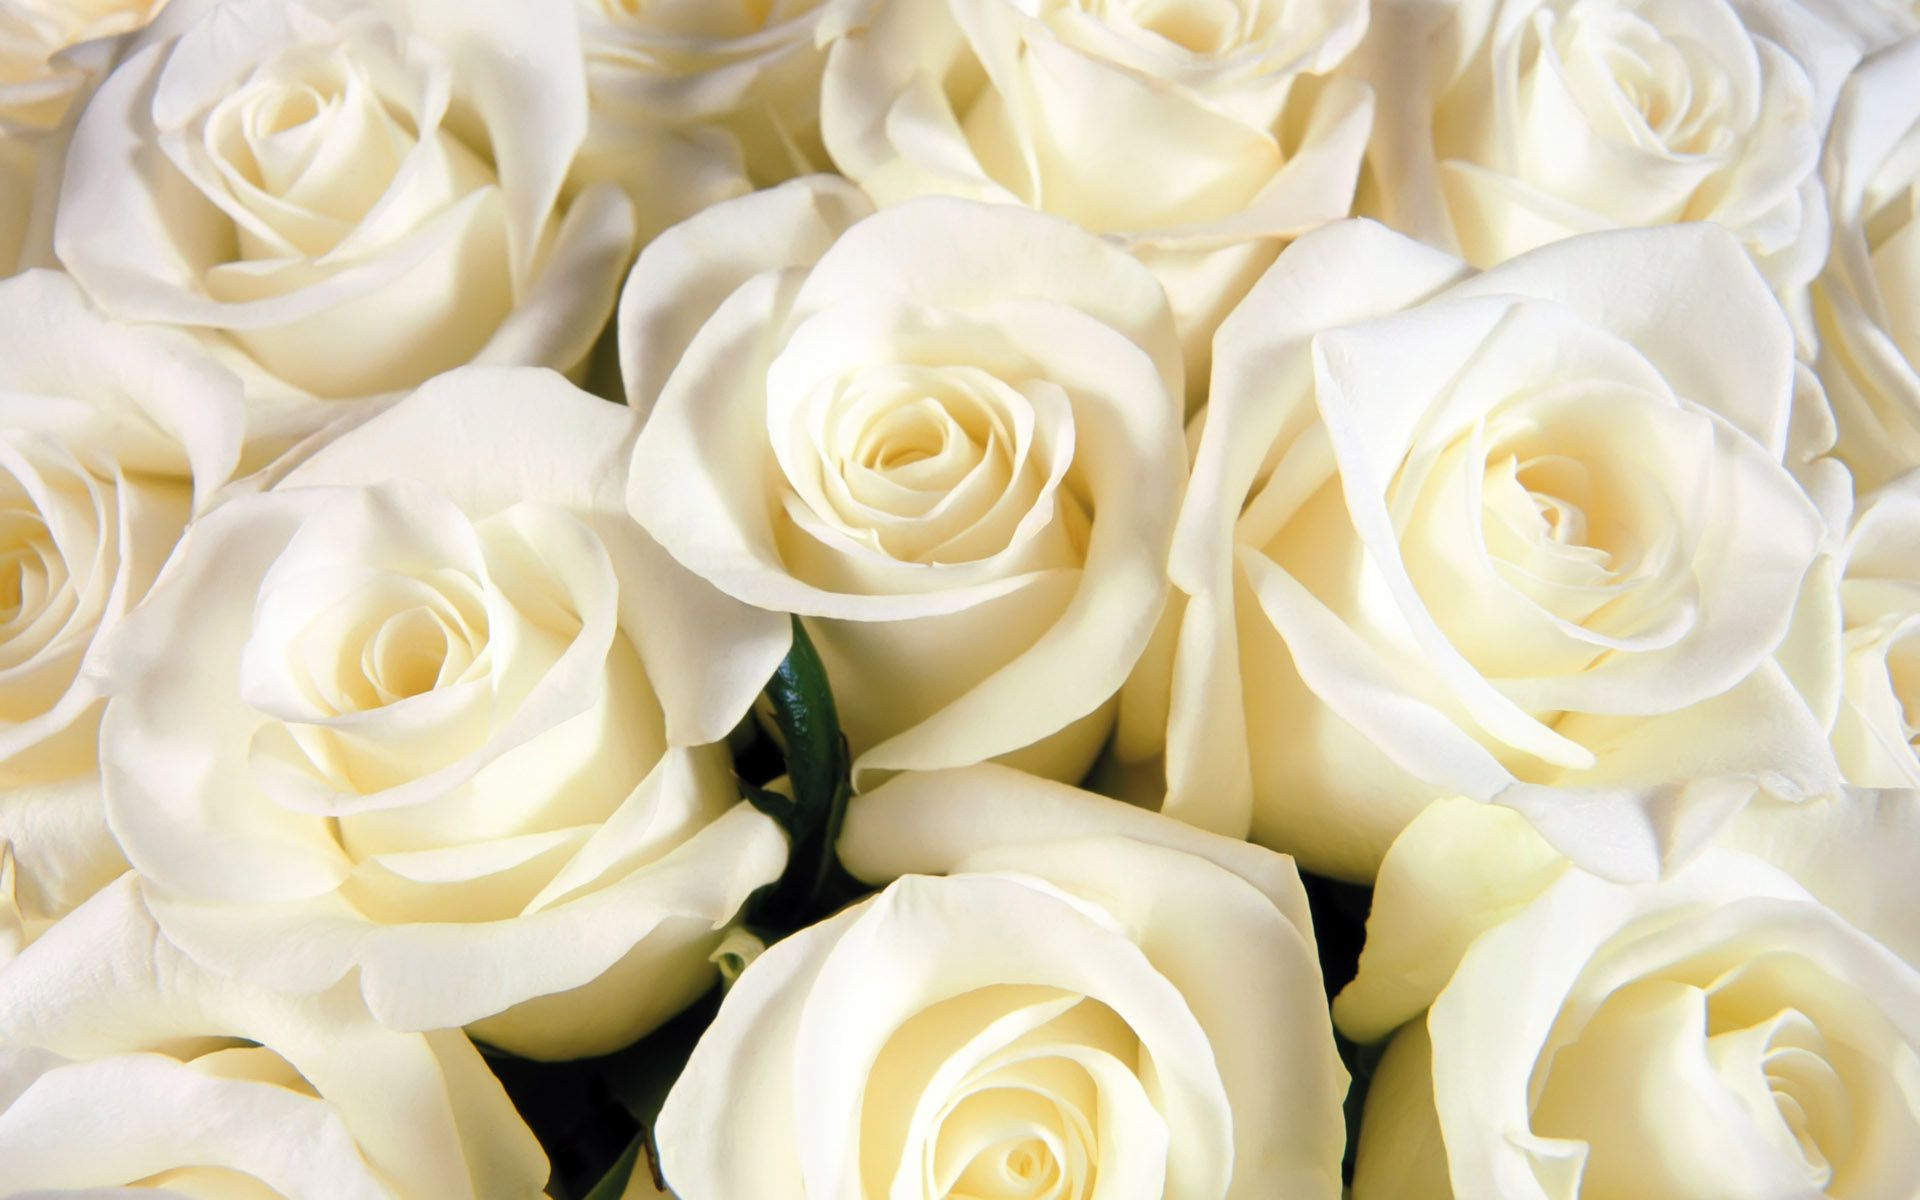 white rose backgrounds wallpapers - photo #36